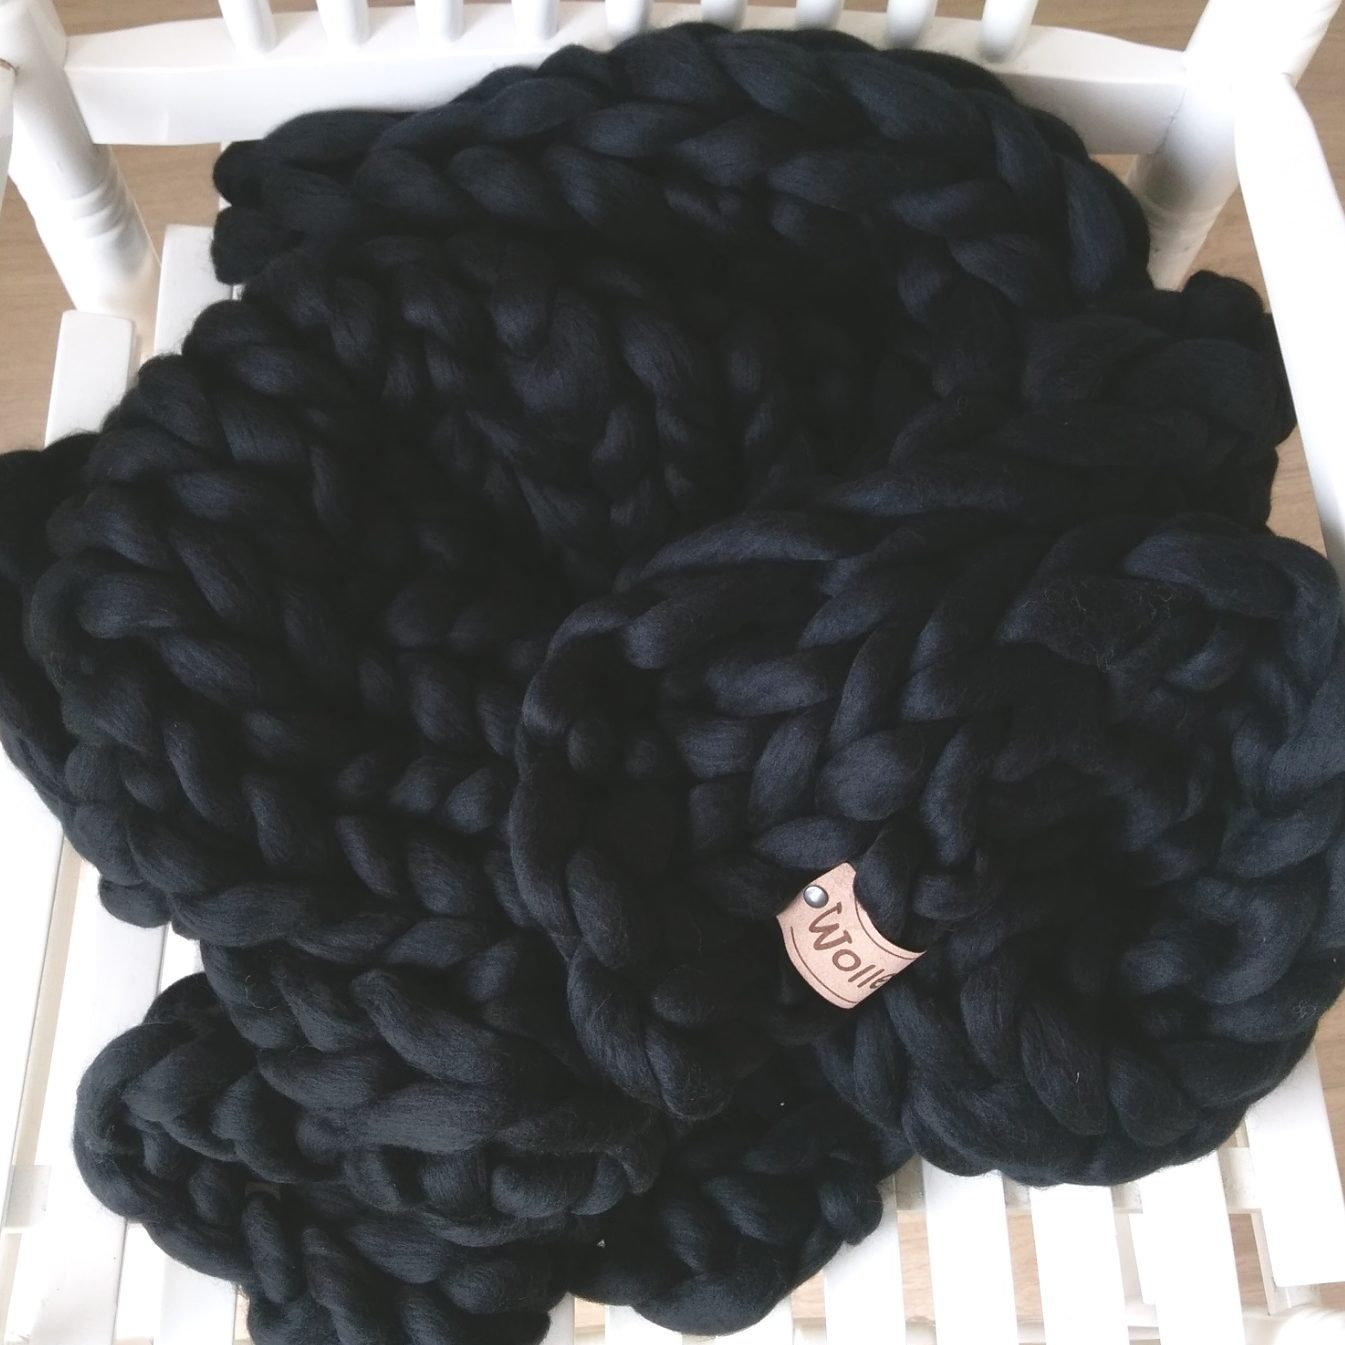 wolletje bol bolletje wol chunky knit merino wool woollen plaid blanket pillow cushion black throw organic wool